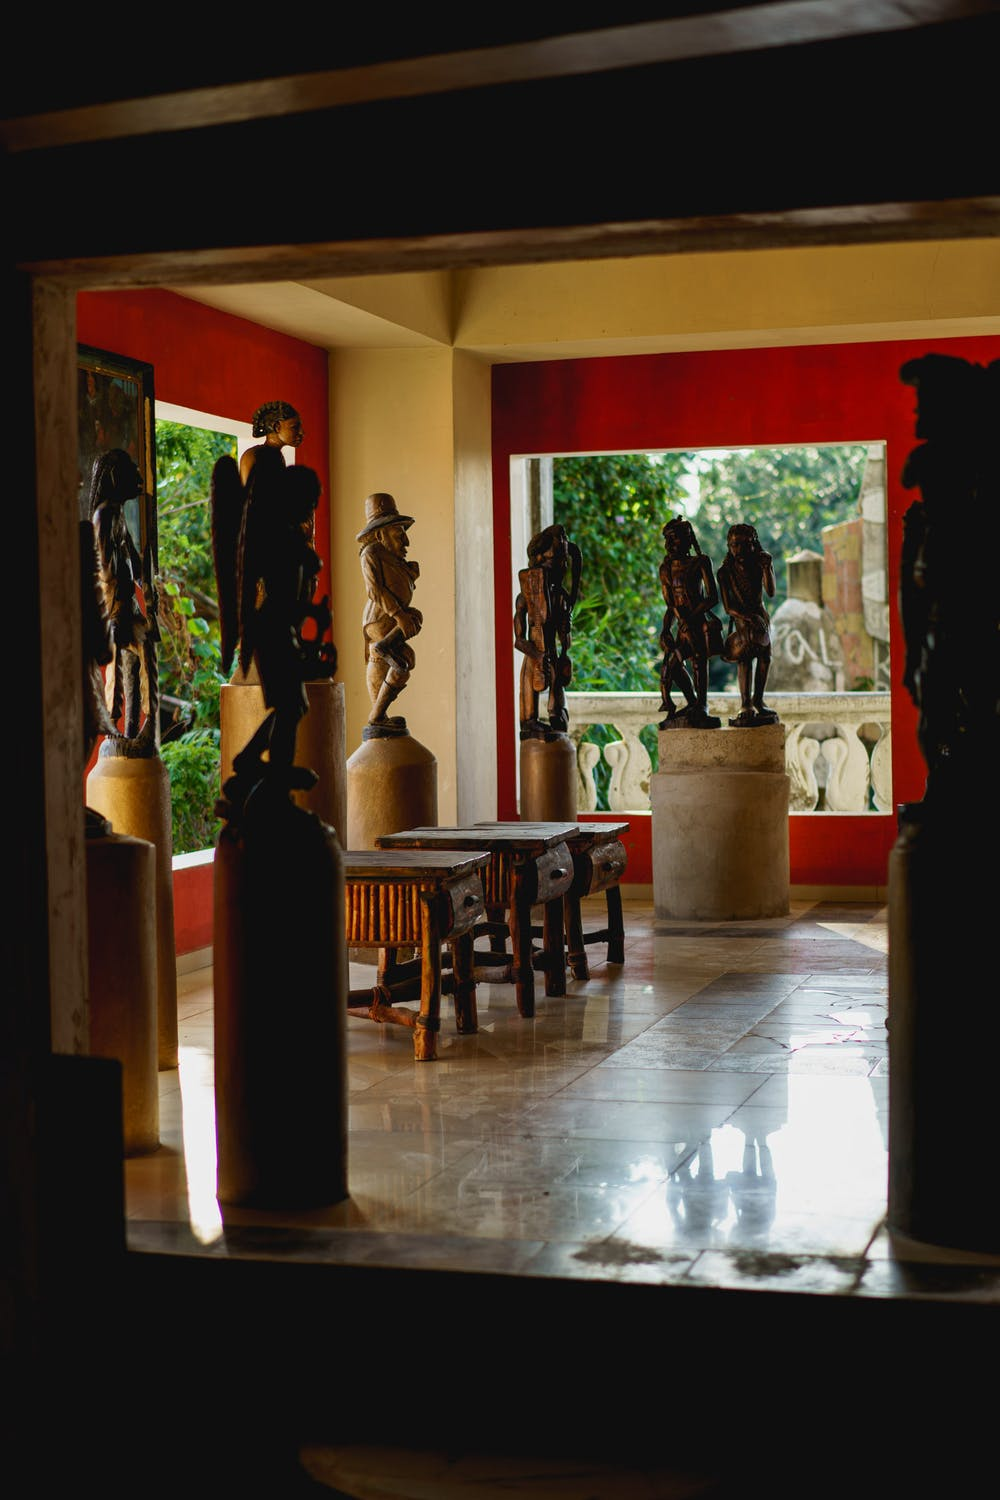 Room full of hand carved Haitian sculptures and statues in a open air room in the Castillo Mundo King mansion of Sosua